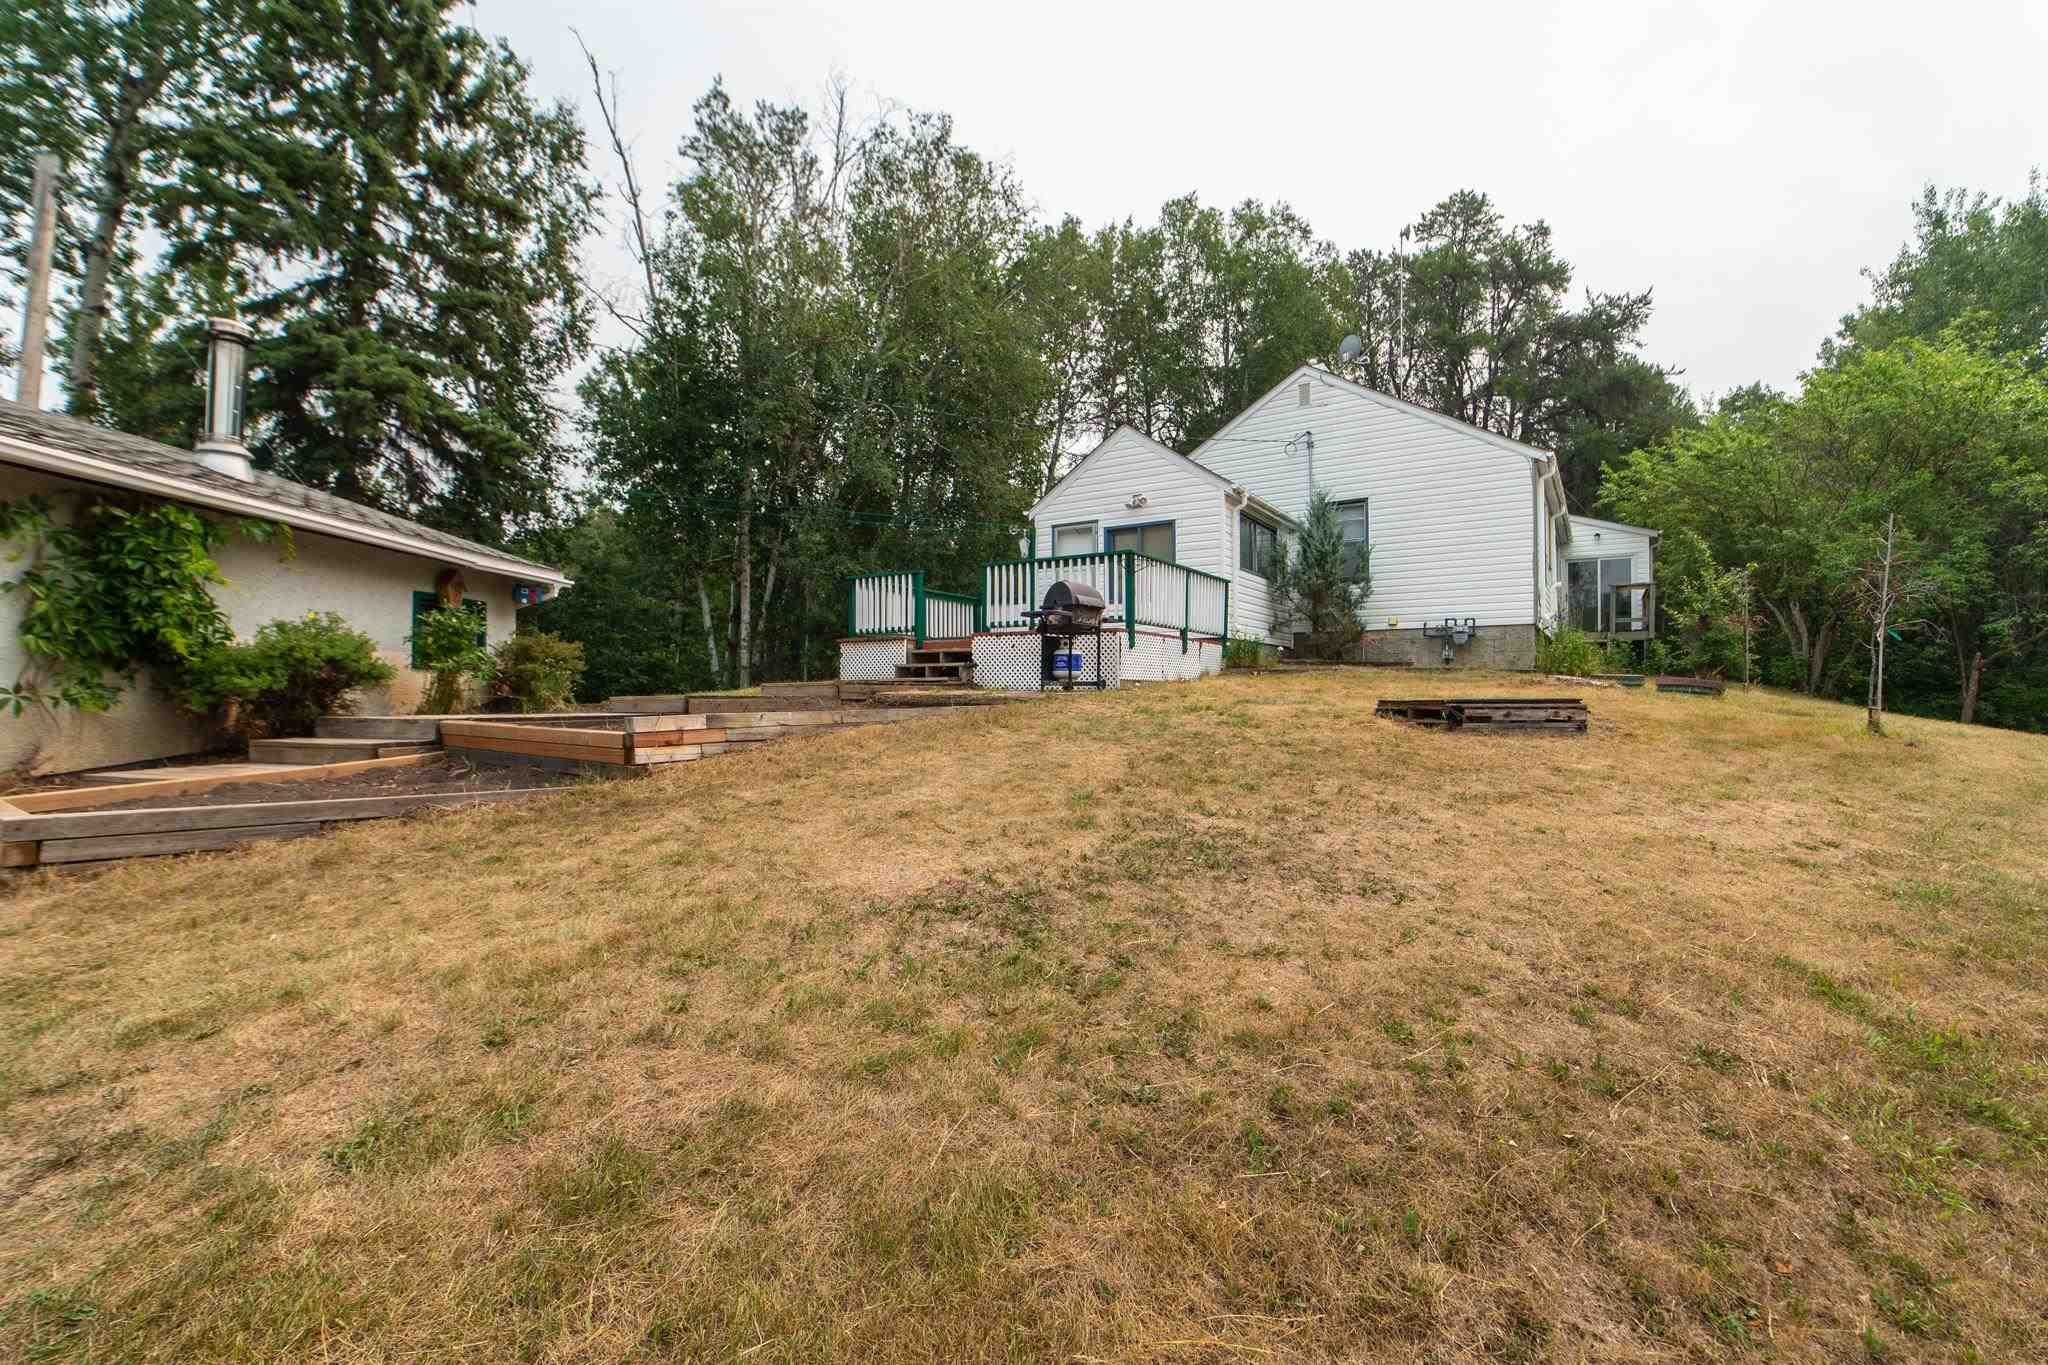 Main Photo: 22 51228 RGE RD 264: Rural Parkland County House for sale : MLS®# E4255197